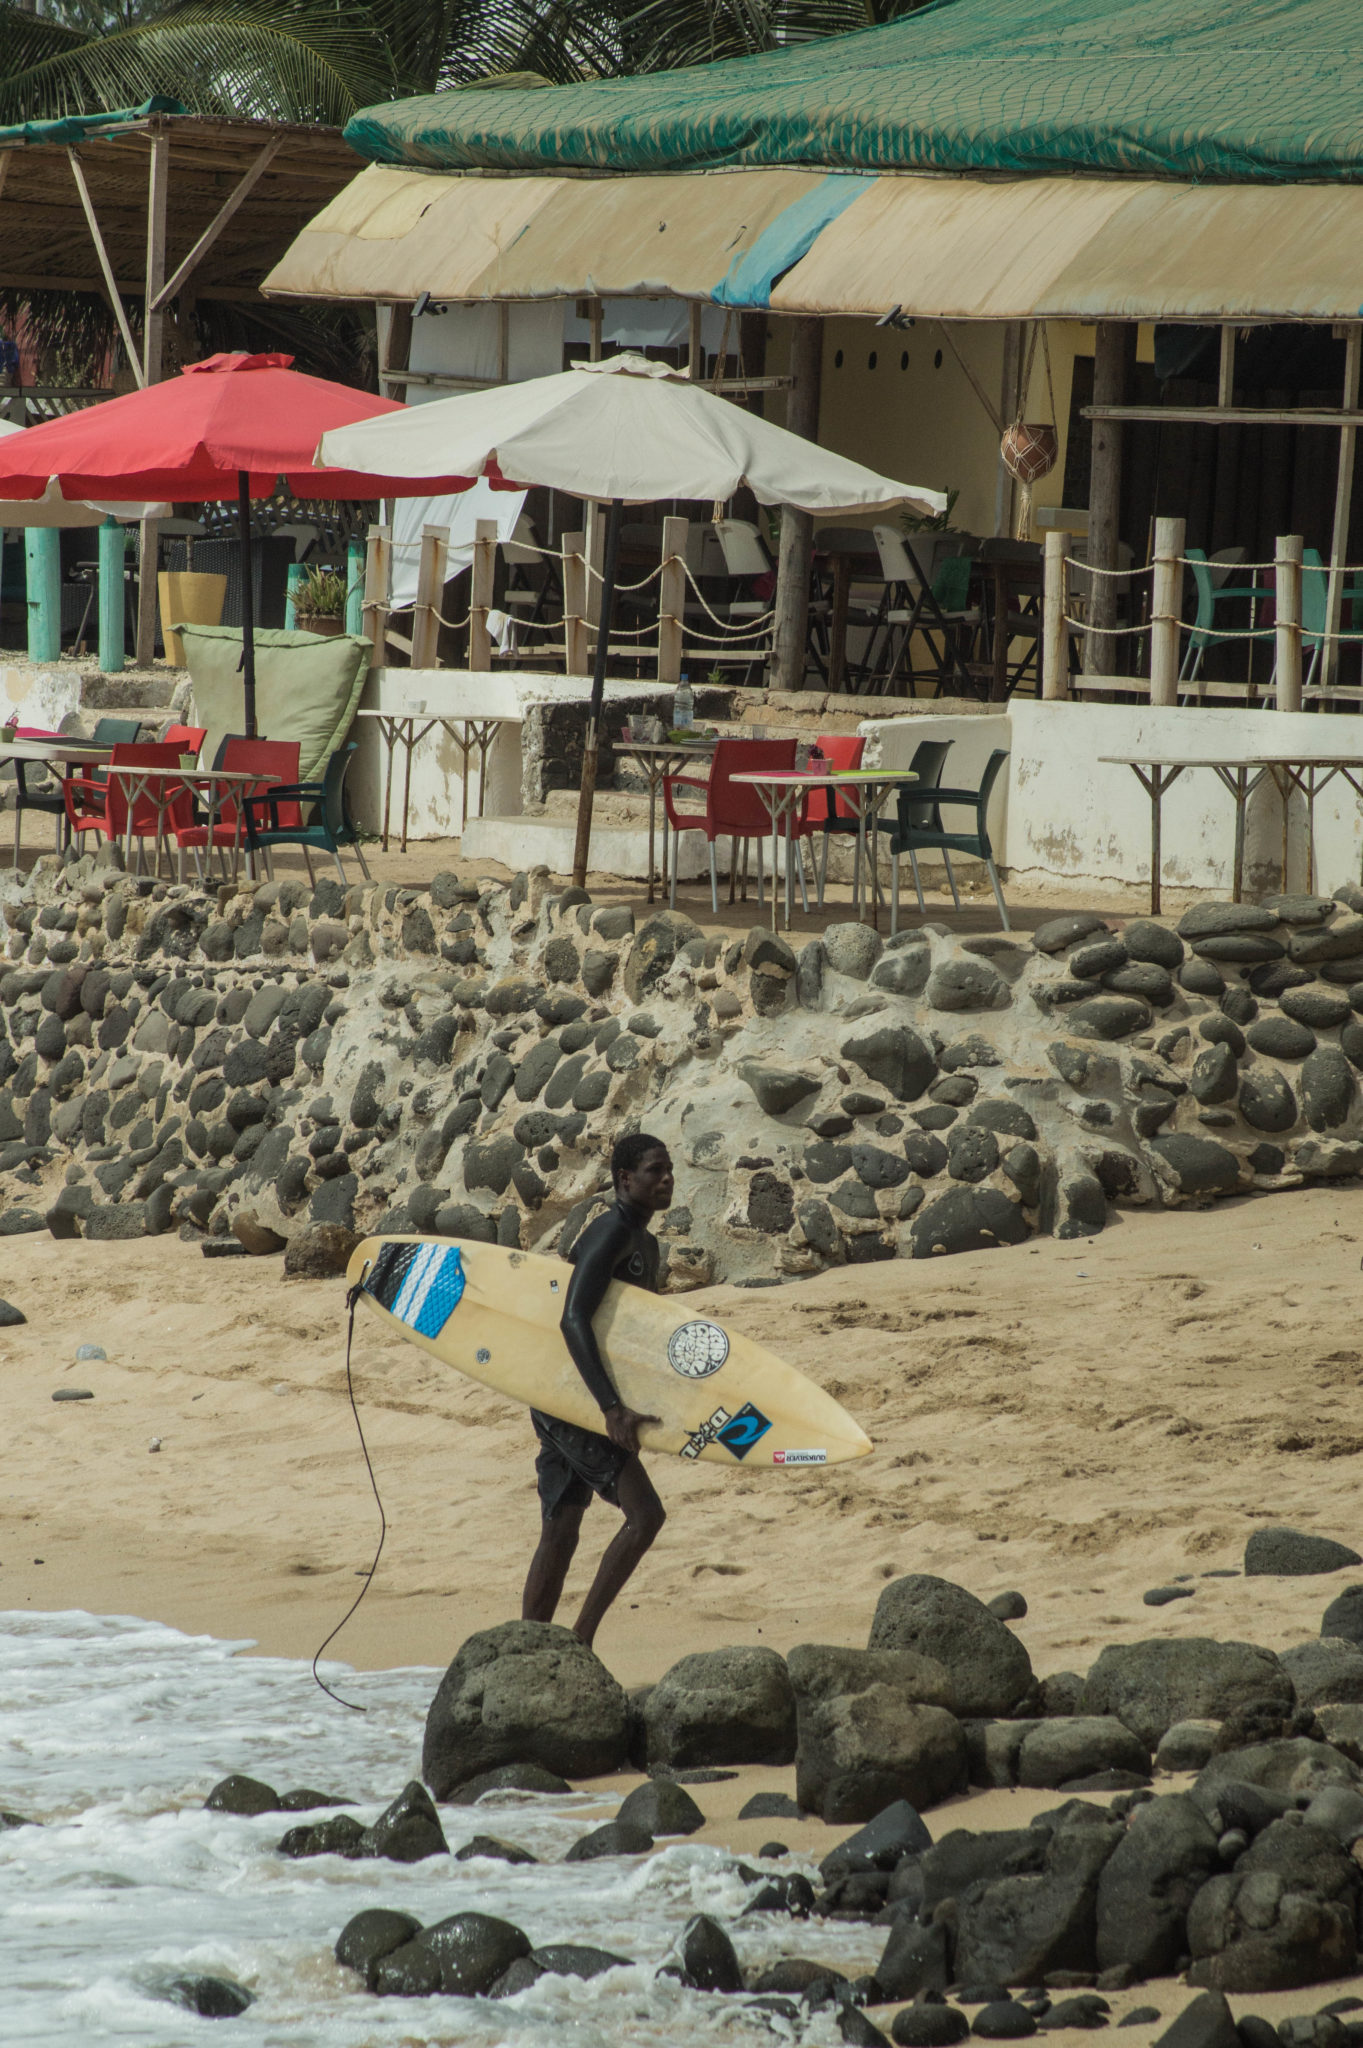 Senegal Surf: Les Almadies in Dakar are a perfect surf spot